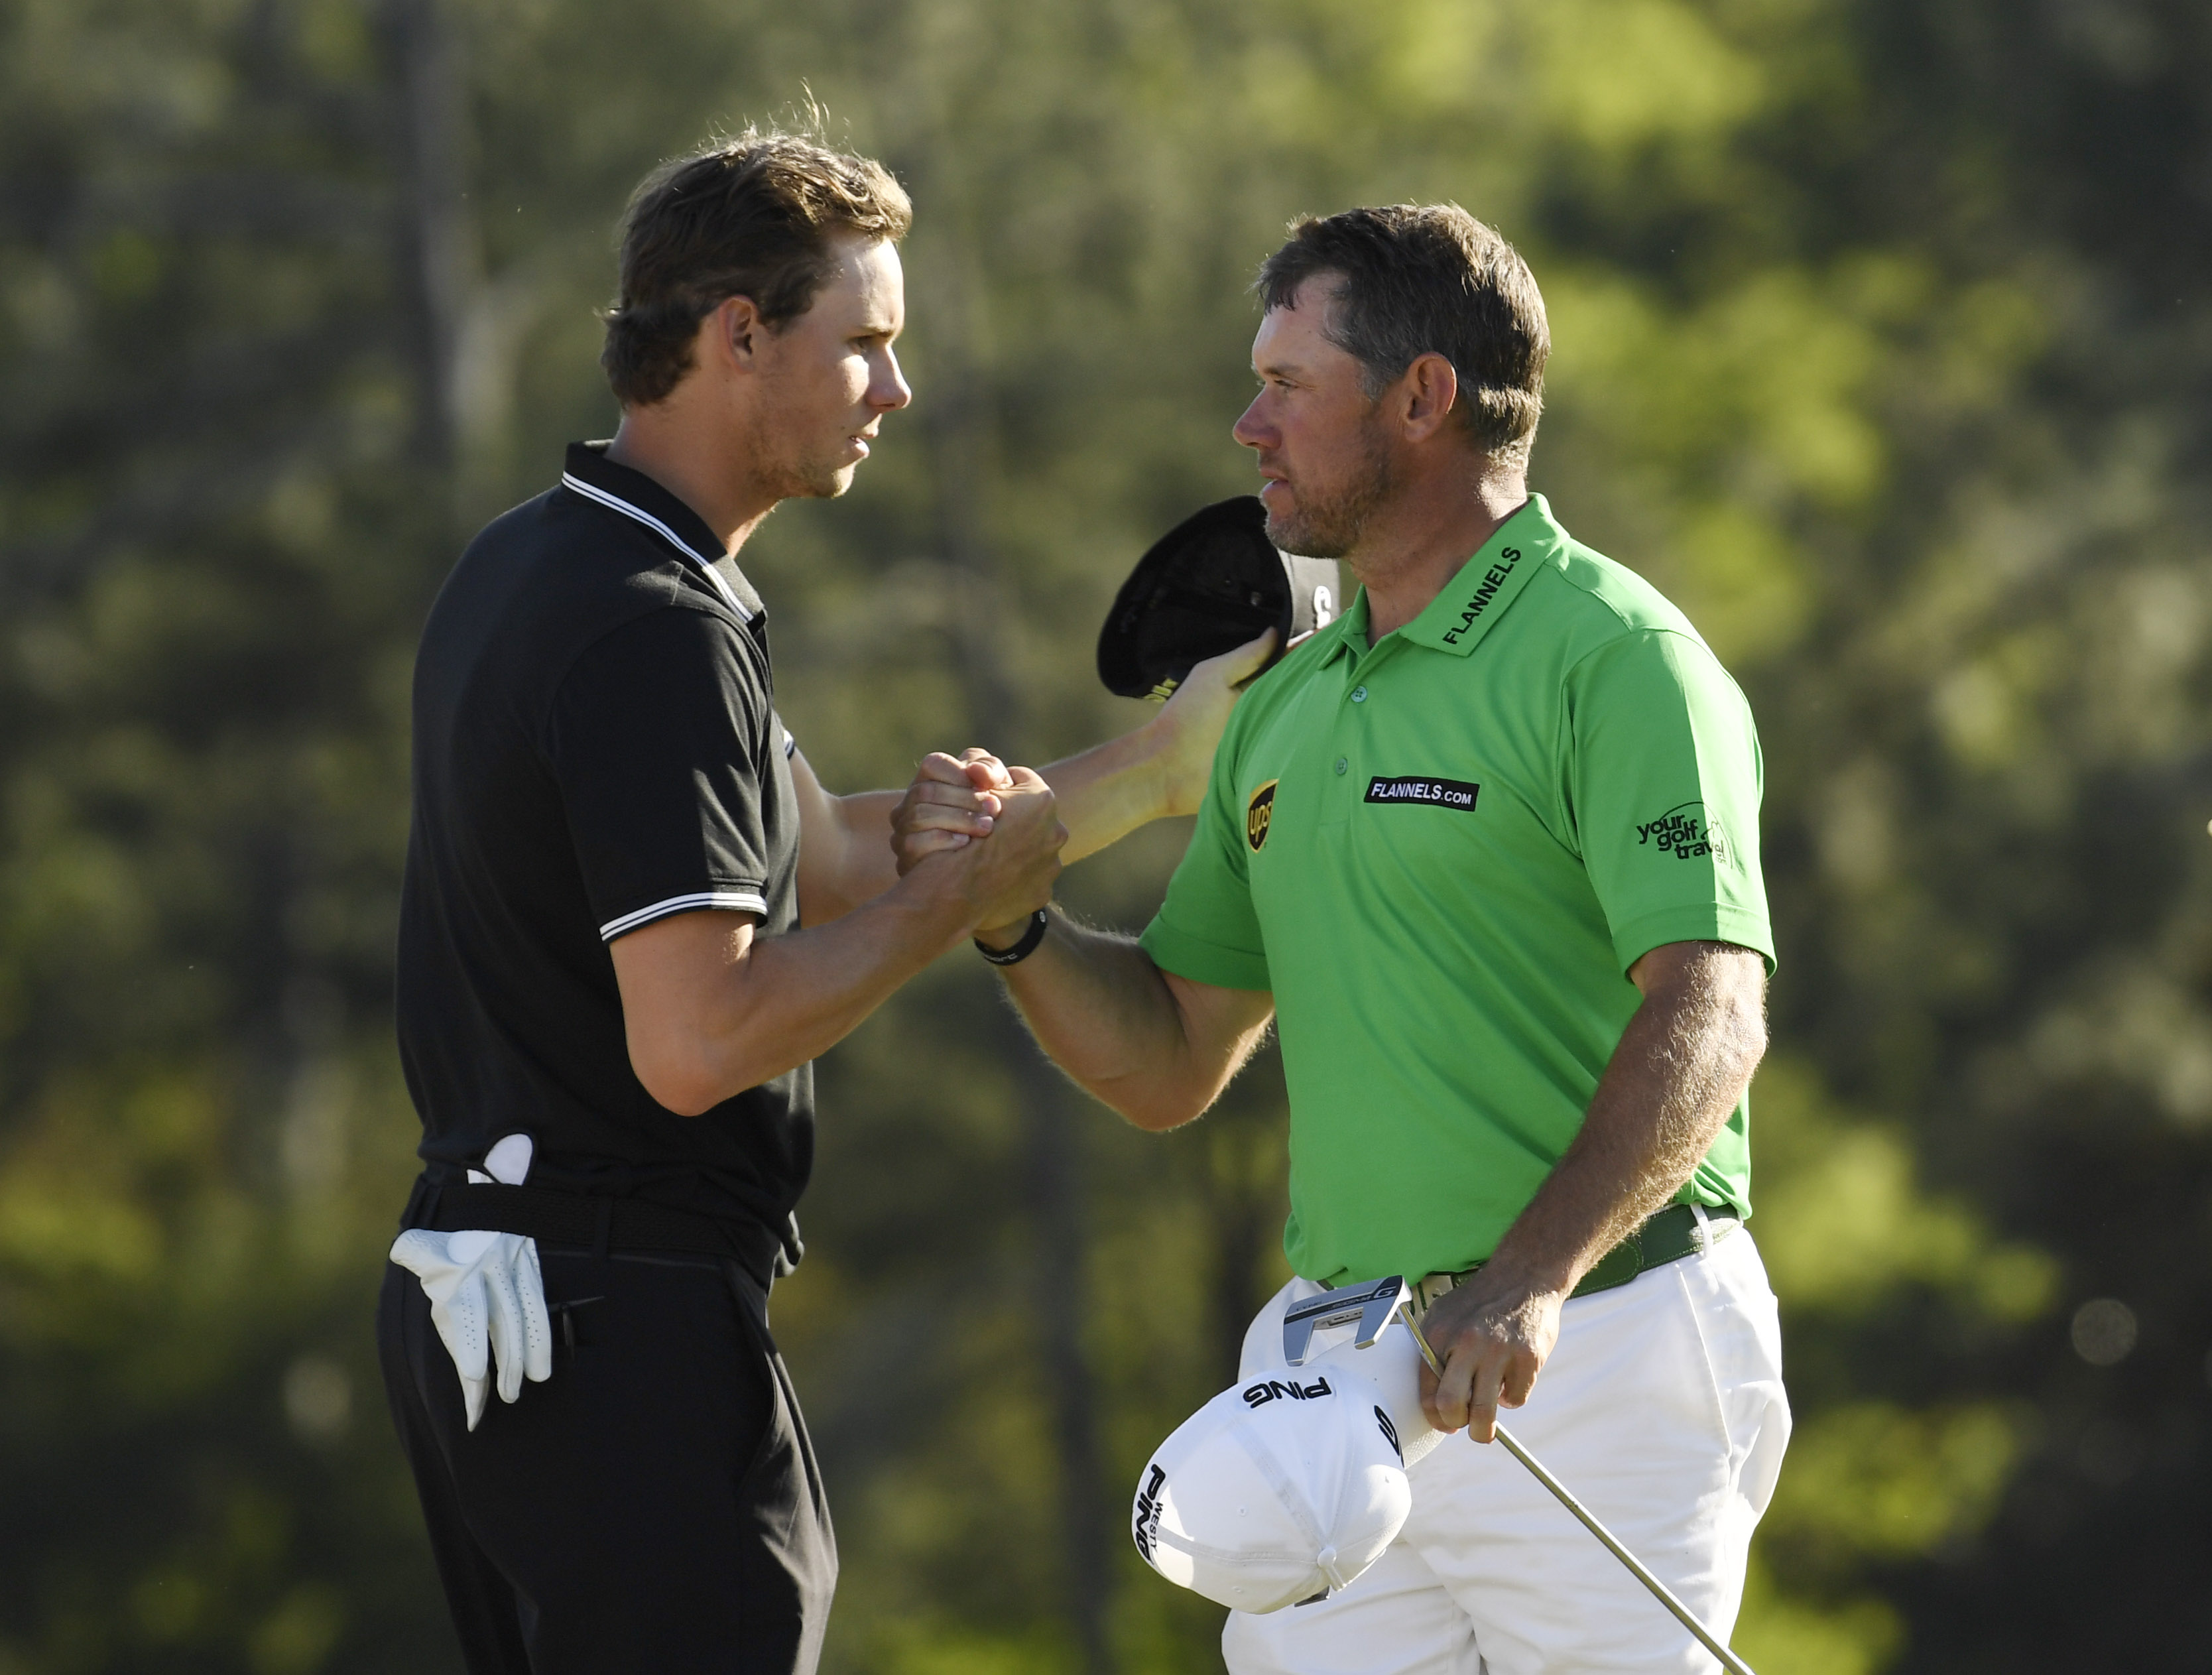 10004297-pga-the-masters-final-round